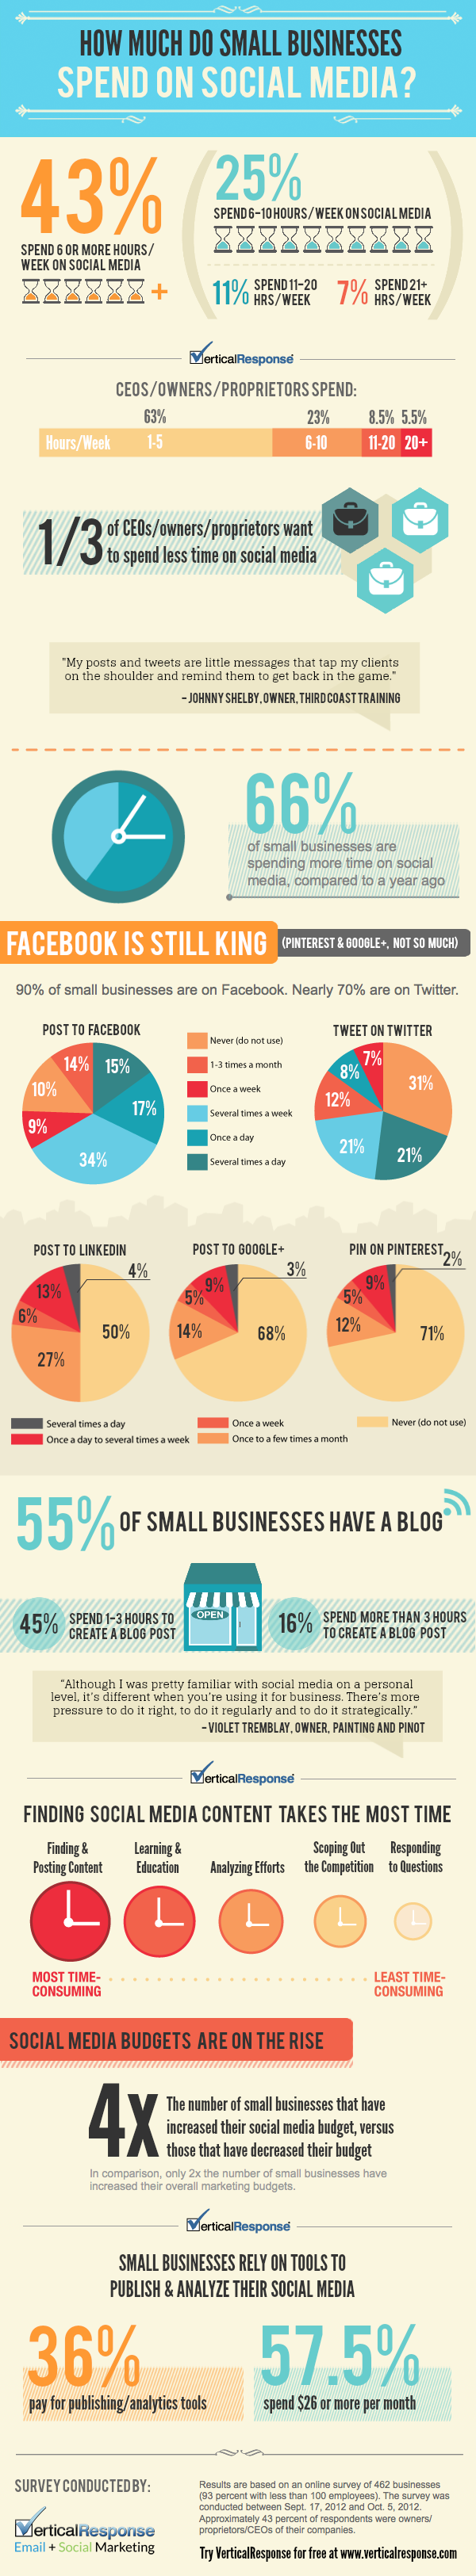 how-much-time-and-money-do-small-businesses-spend-on-social-media-infographic